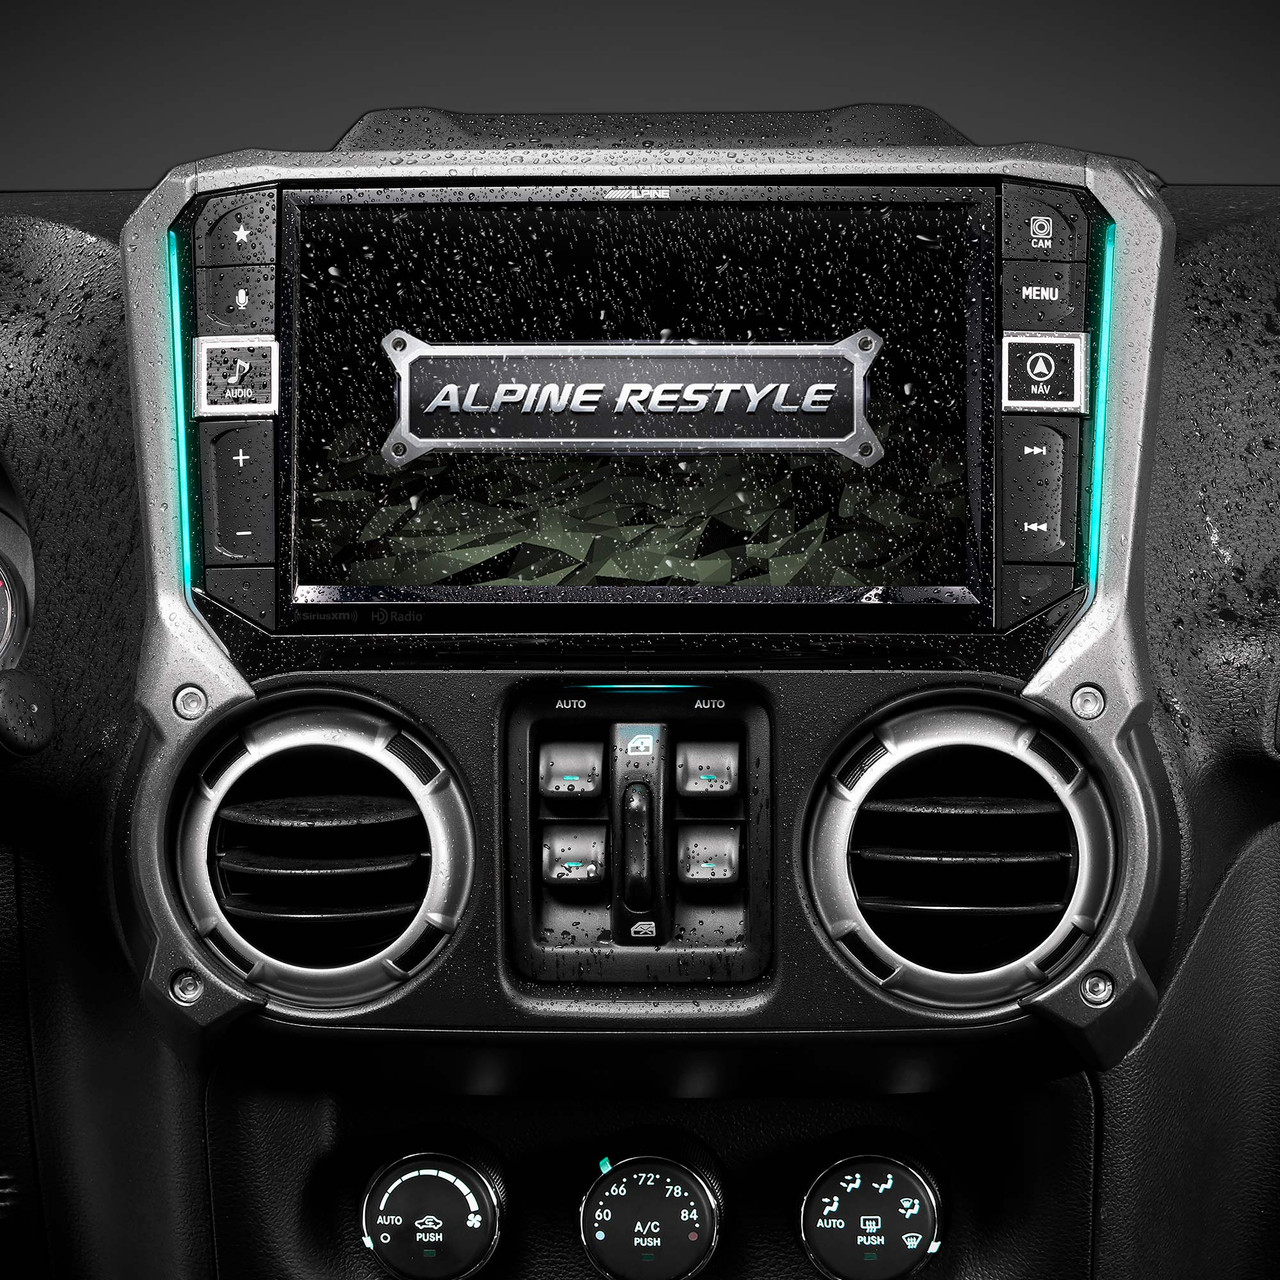 Alpine X9-WRA-JK 9-Inch Weather-Resistant Mech-less Navigation System  with Off-Road Mode for 9-9 Jeep® Wrangler